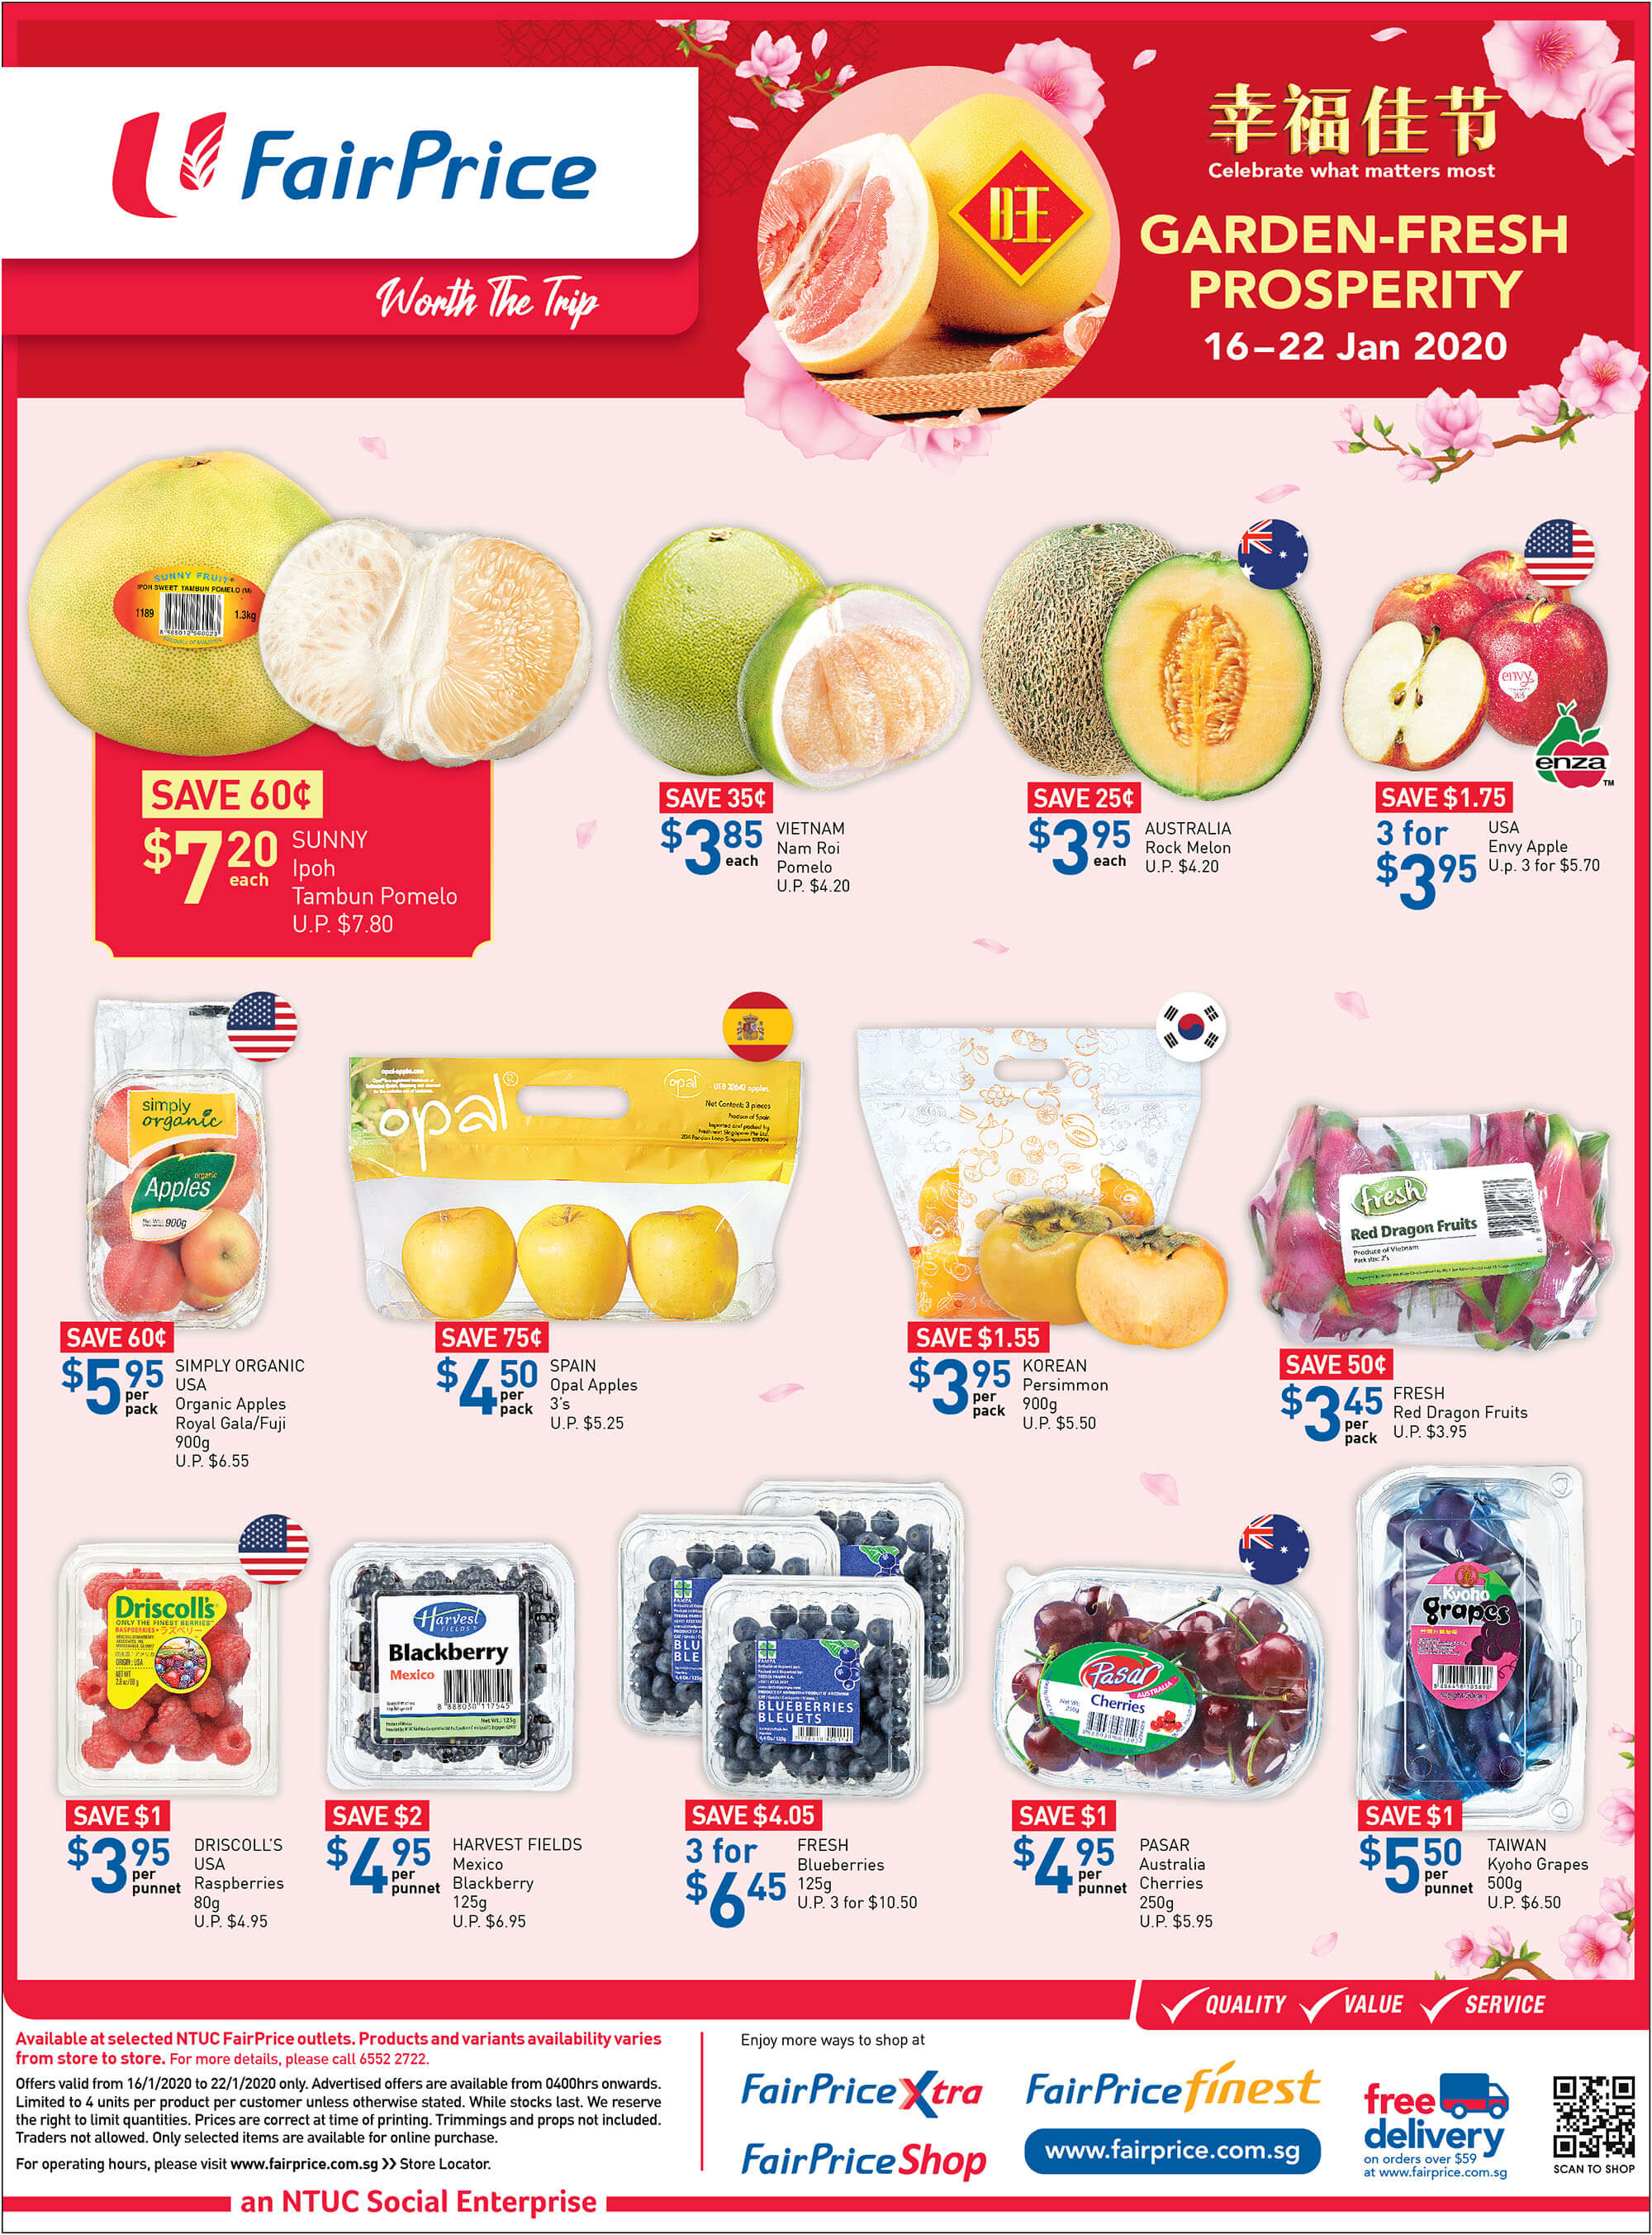 NTUC FairPrice SG Your Weekly Saver Promotion 16-22 Jan 2020 | Why Not Deals 3 & Promotions